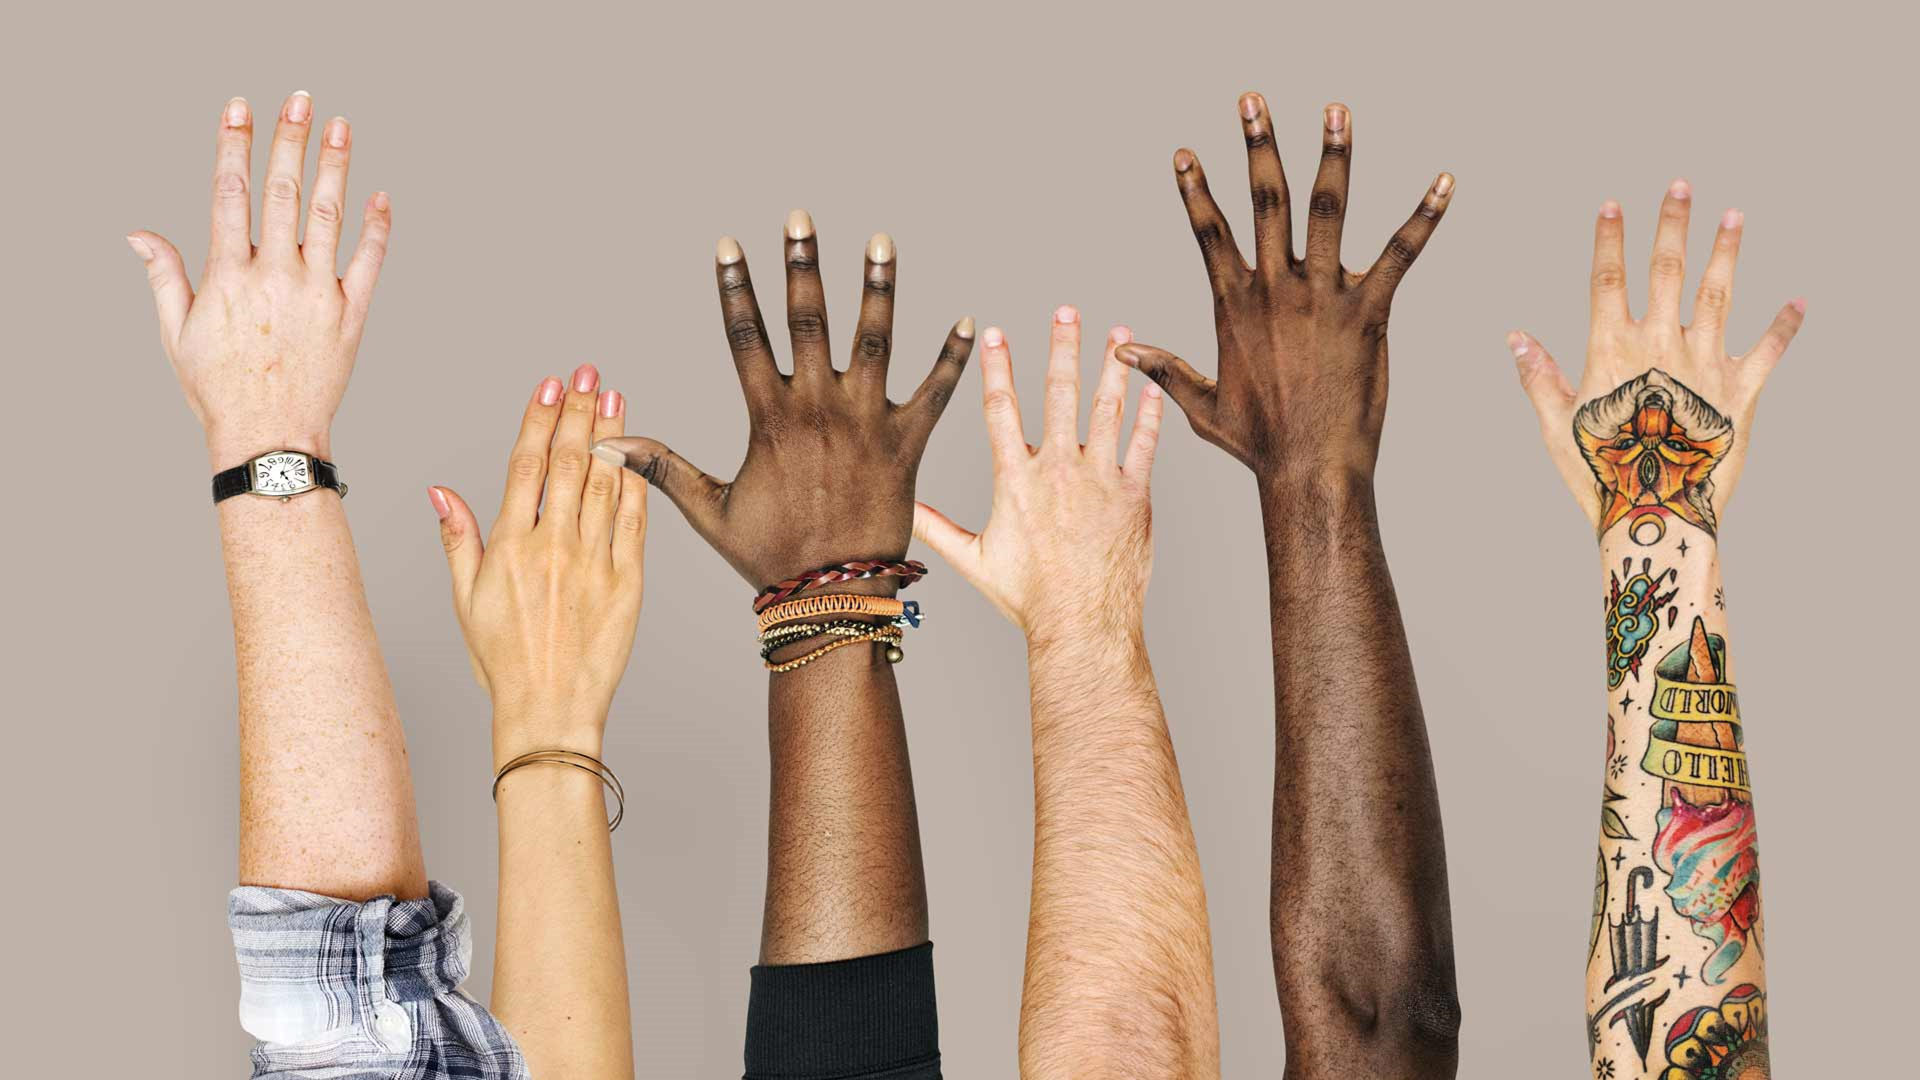 April 15, 10-11:30 am: The Proximity Principle: Determing Our Views On Diversity & Equity